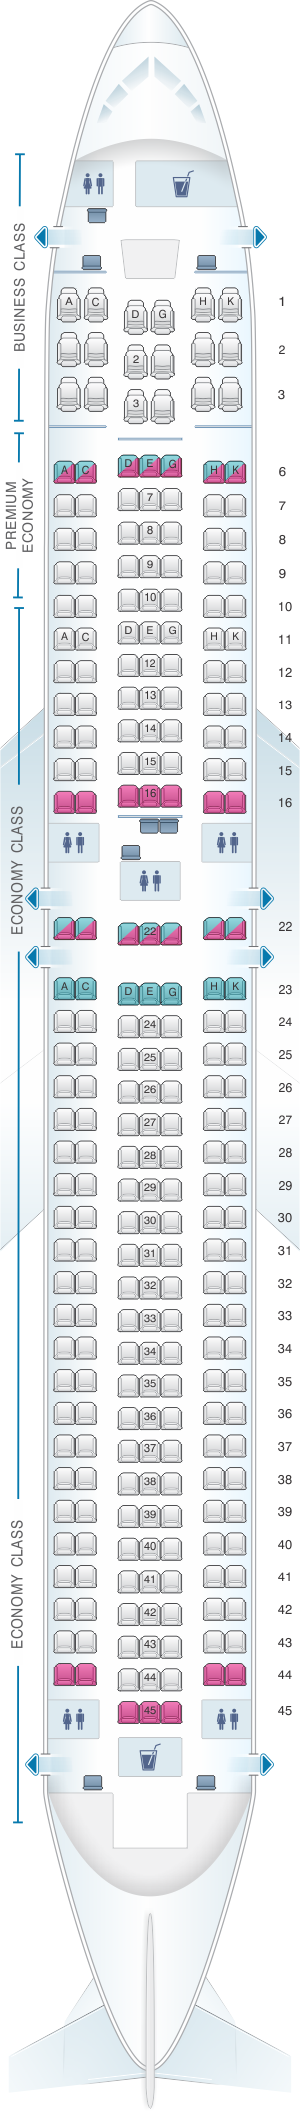 Seat map for Condor Boeing B767 300ER version1